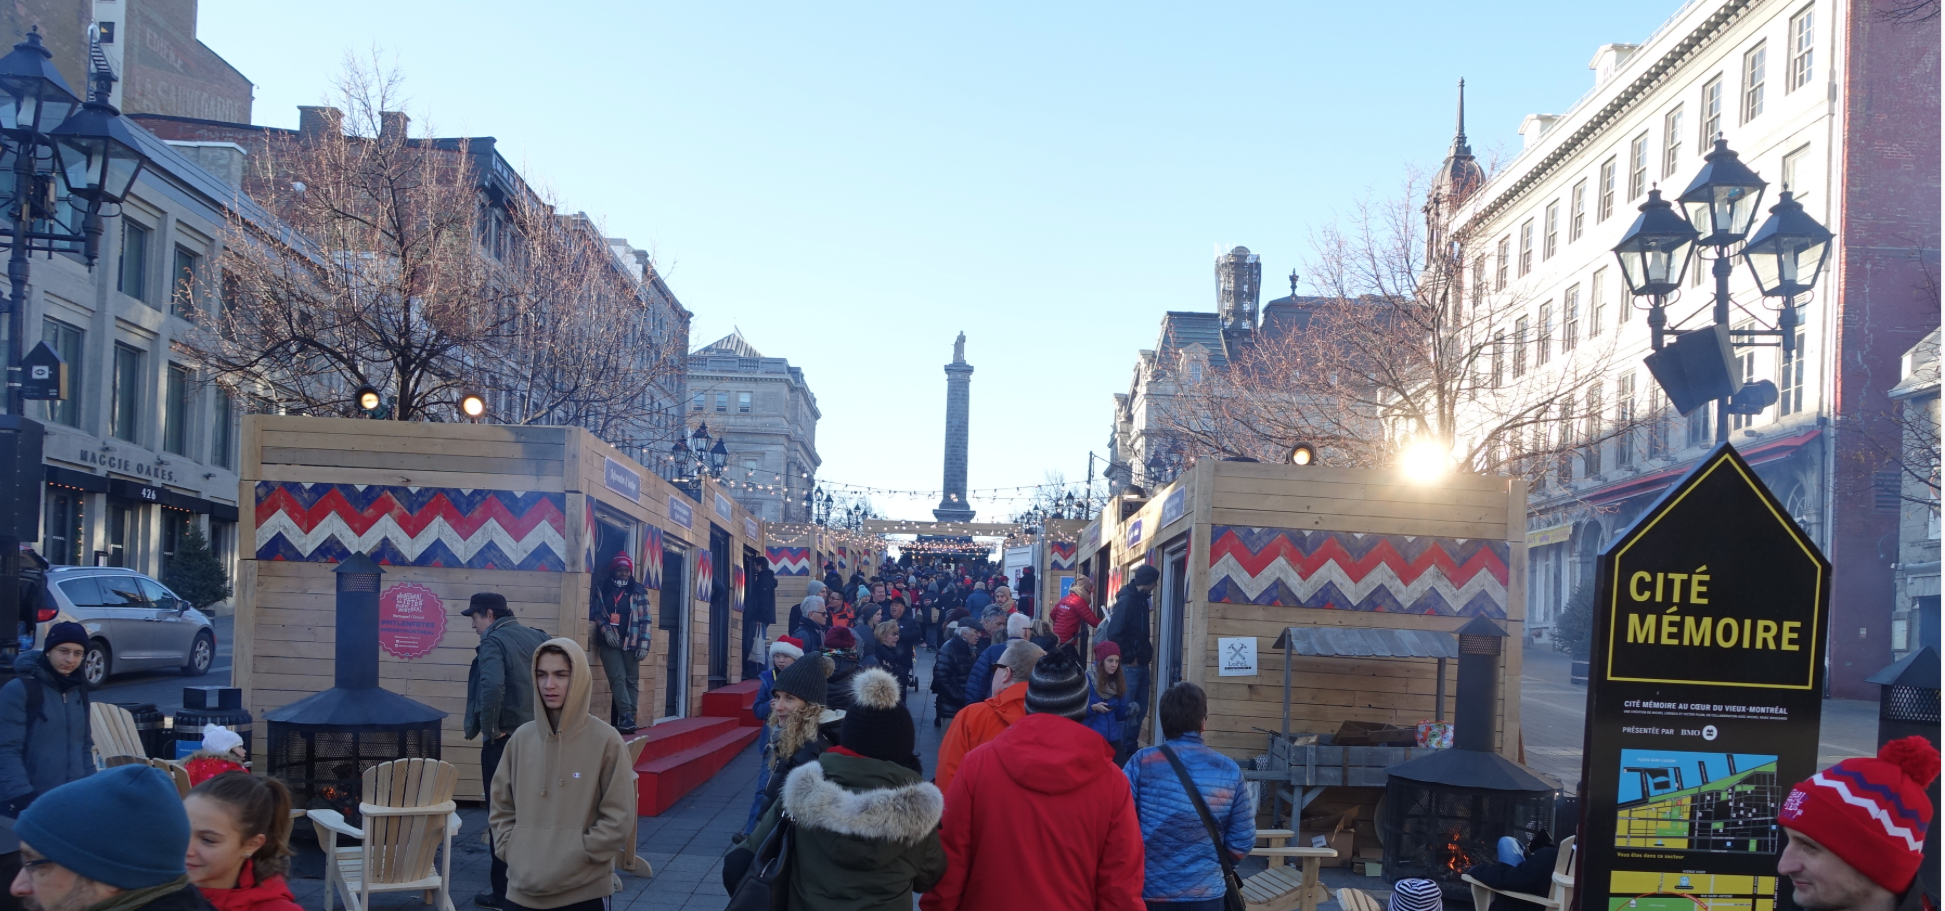 One of several Winter Markets that we encountered as we flaneured Montreal's City Centre.